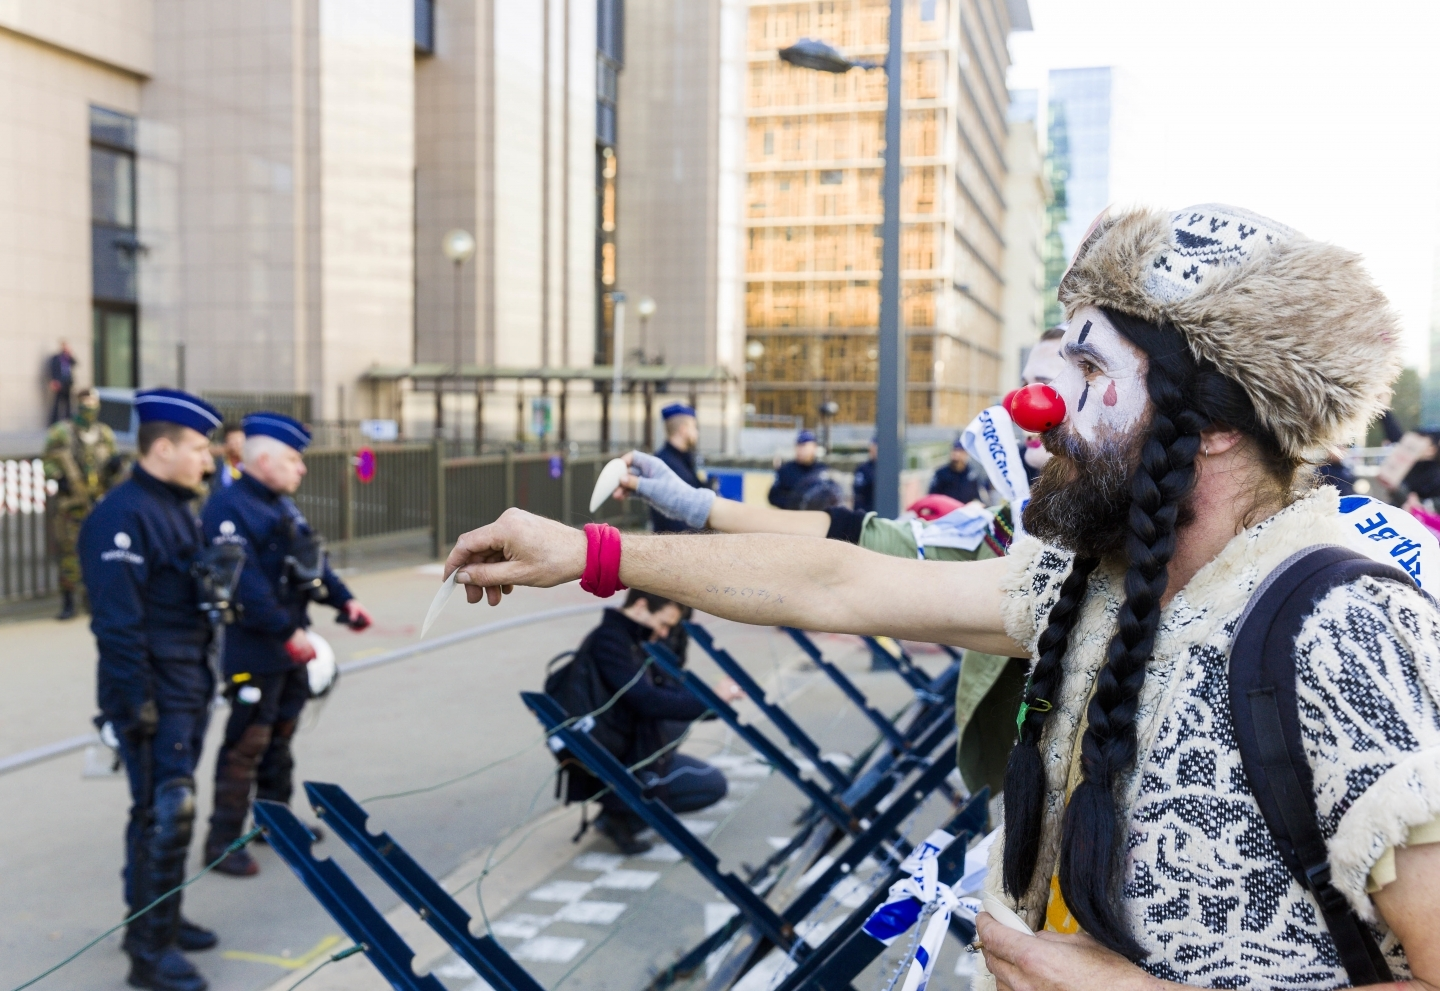 A demonstrator dressed as a clown outside of an EU-Canada summit in Brussels (AP Photo/Geert Vanden Wijngaert)